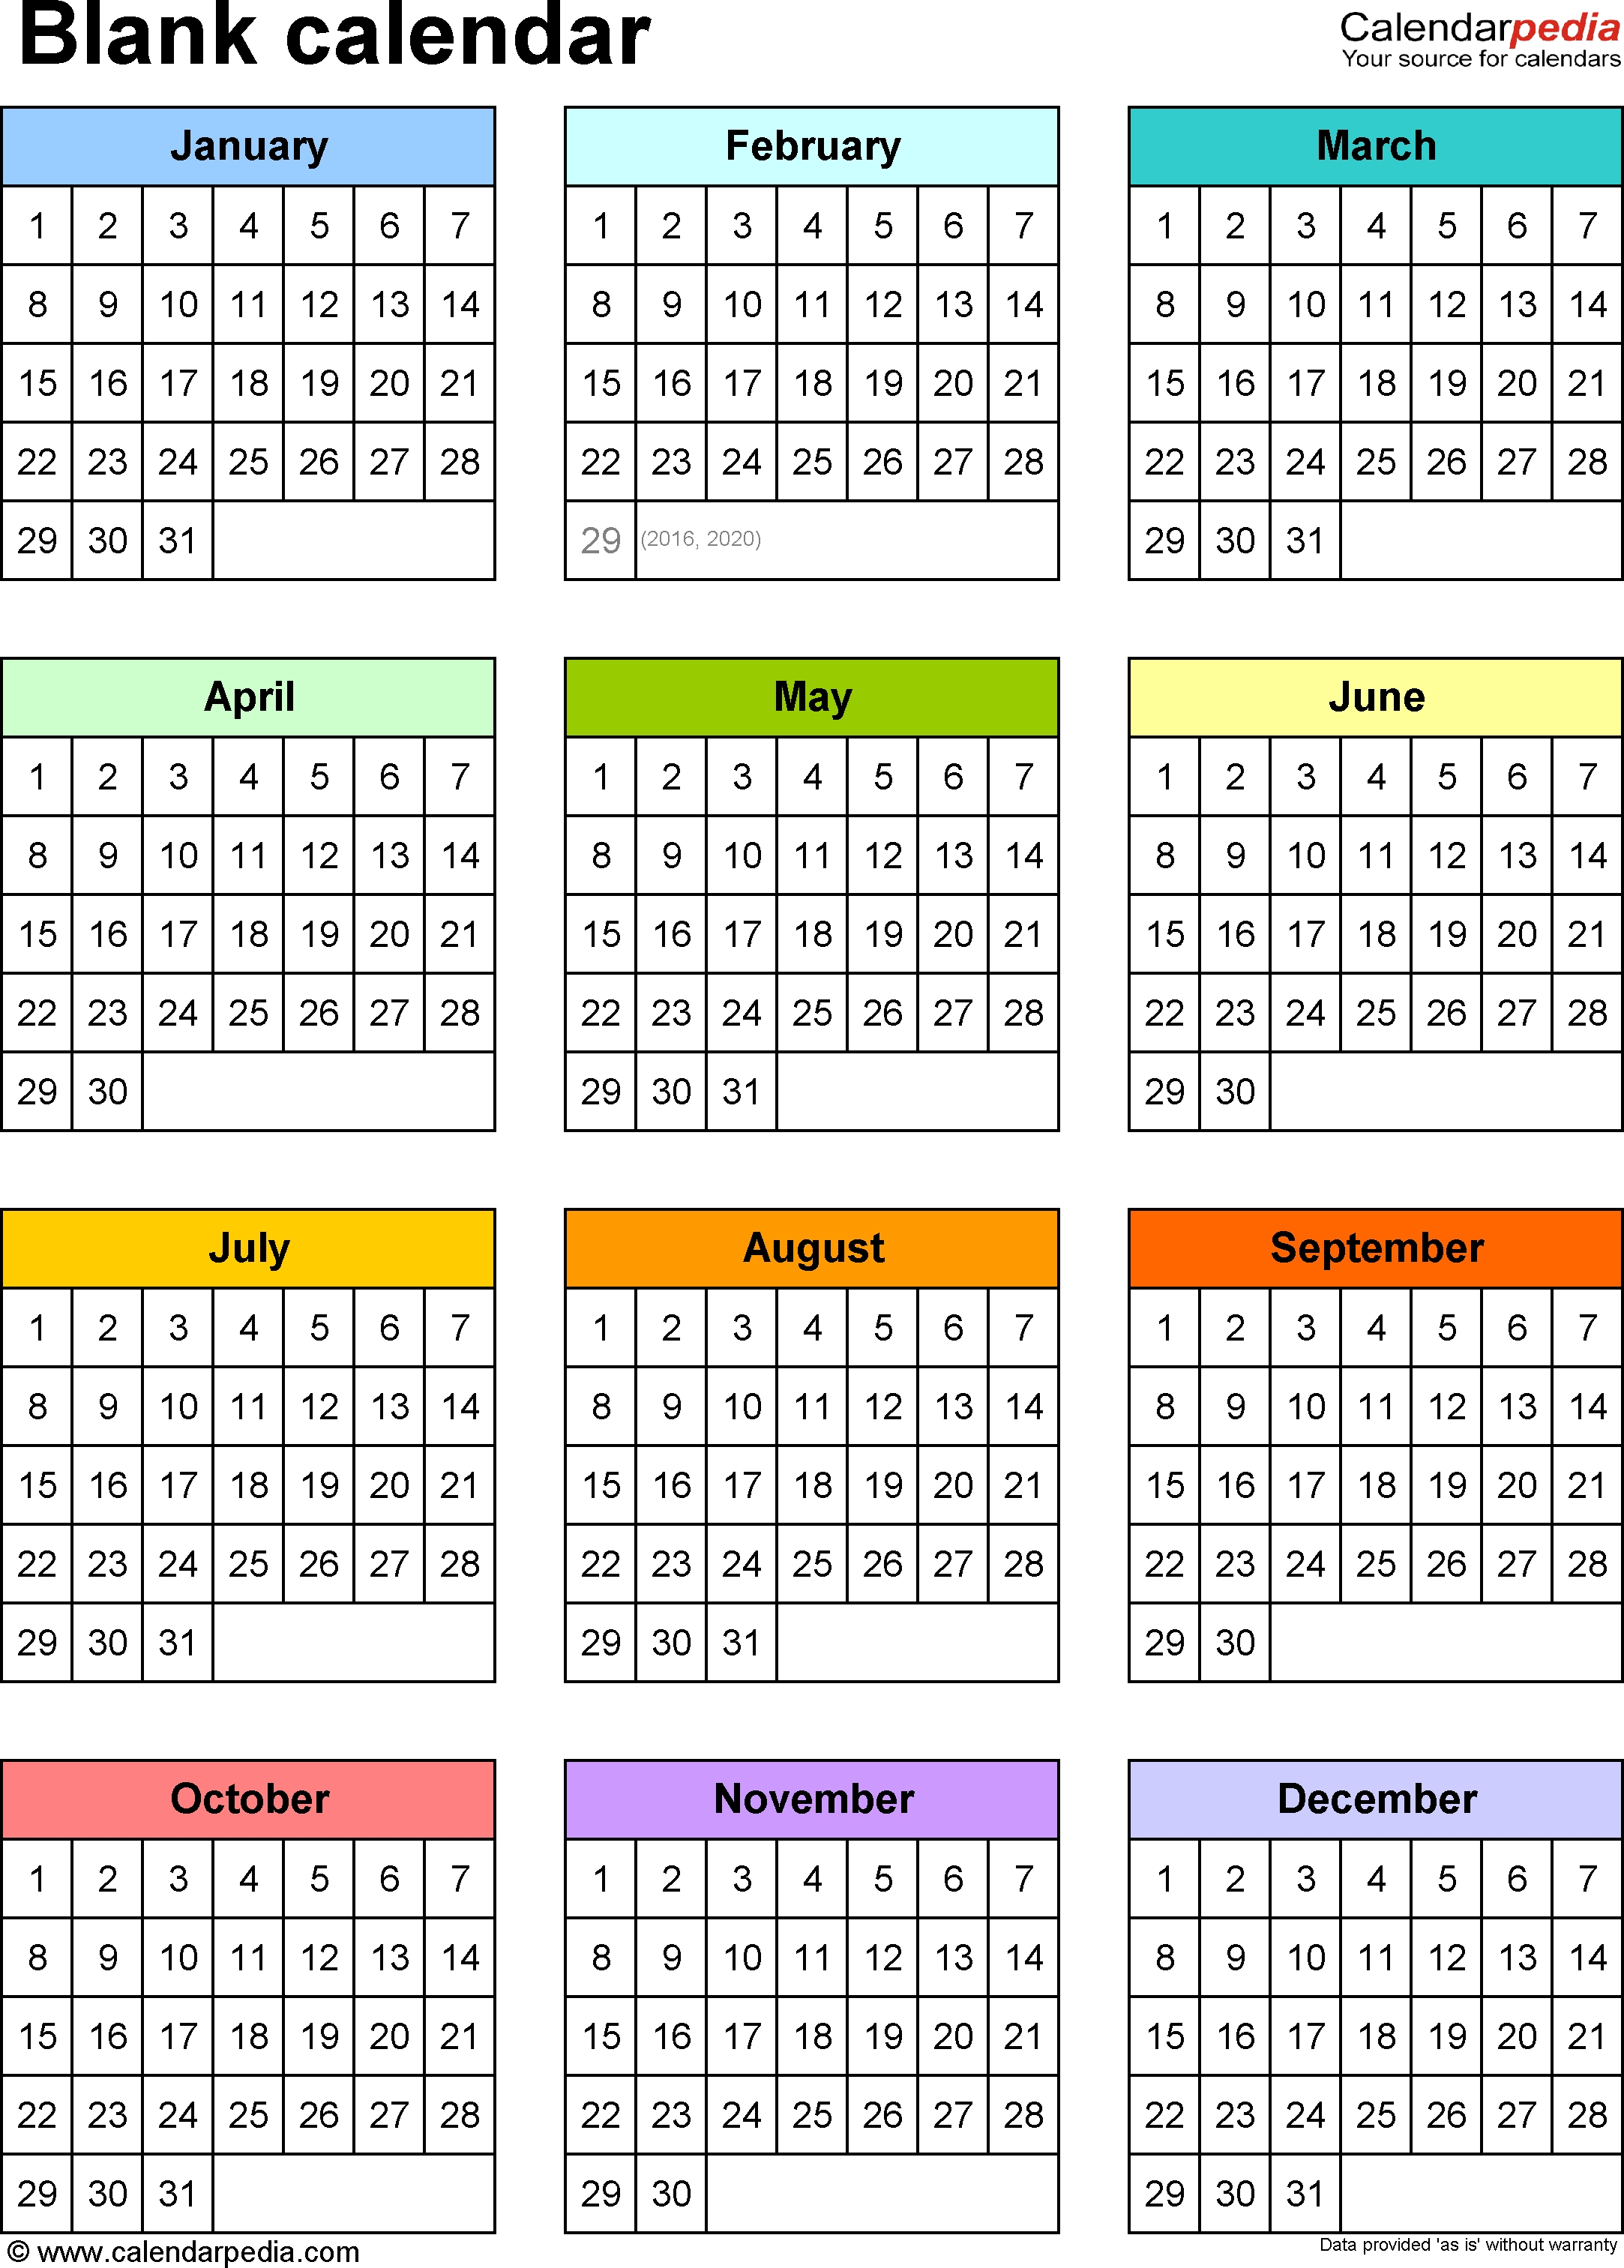 Blank Calendar - 9 Free Printable Microsoft Word Templates in Calendar Template Year At A Glance